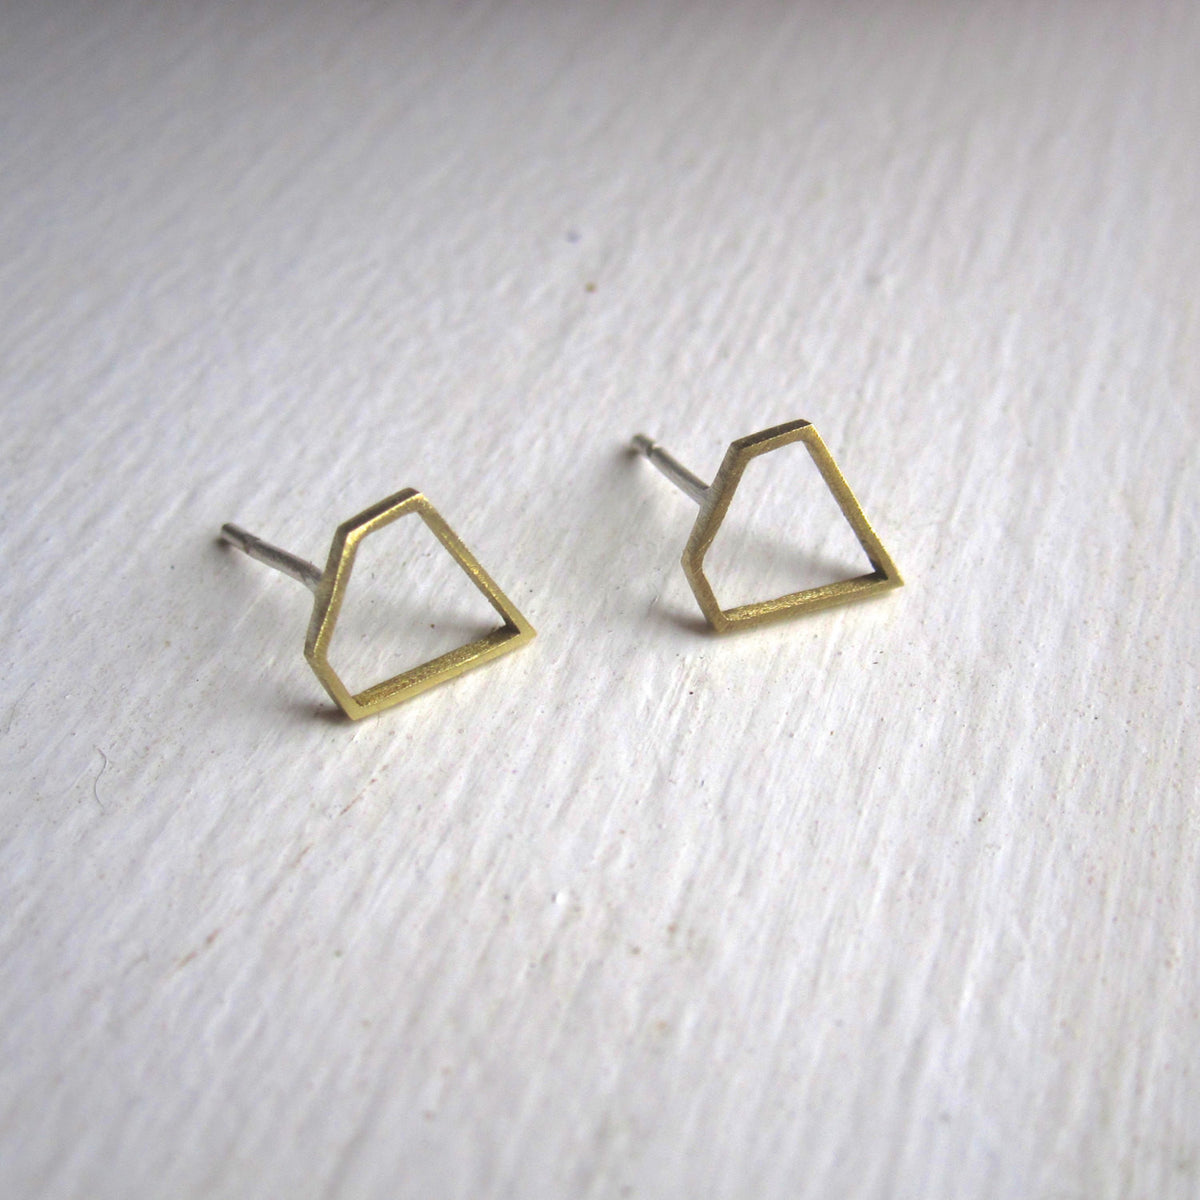 Hand-Made, Diamond Shaped, Outline Stud Earrings in Brass - 0172 - Virginia Wynne Designs